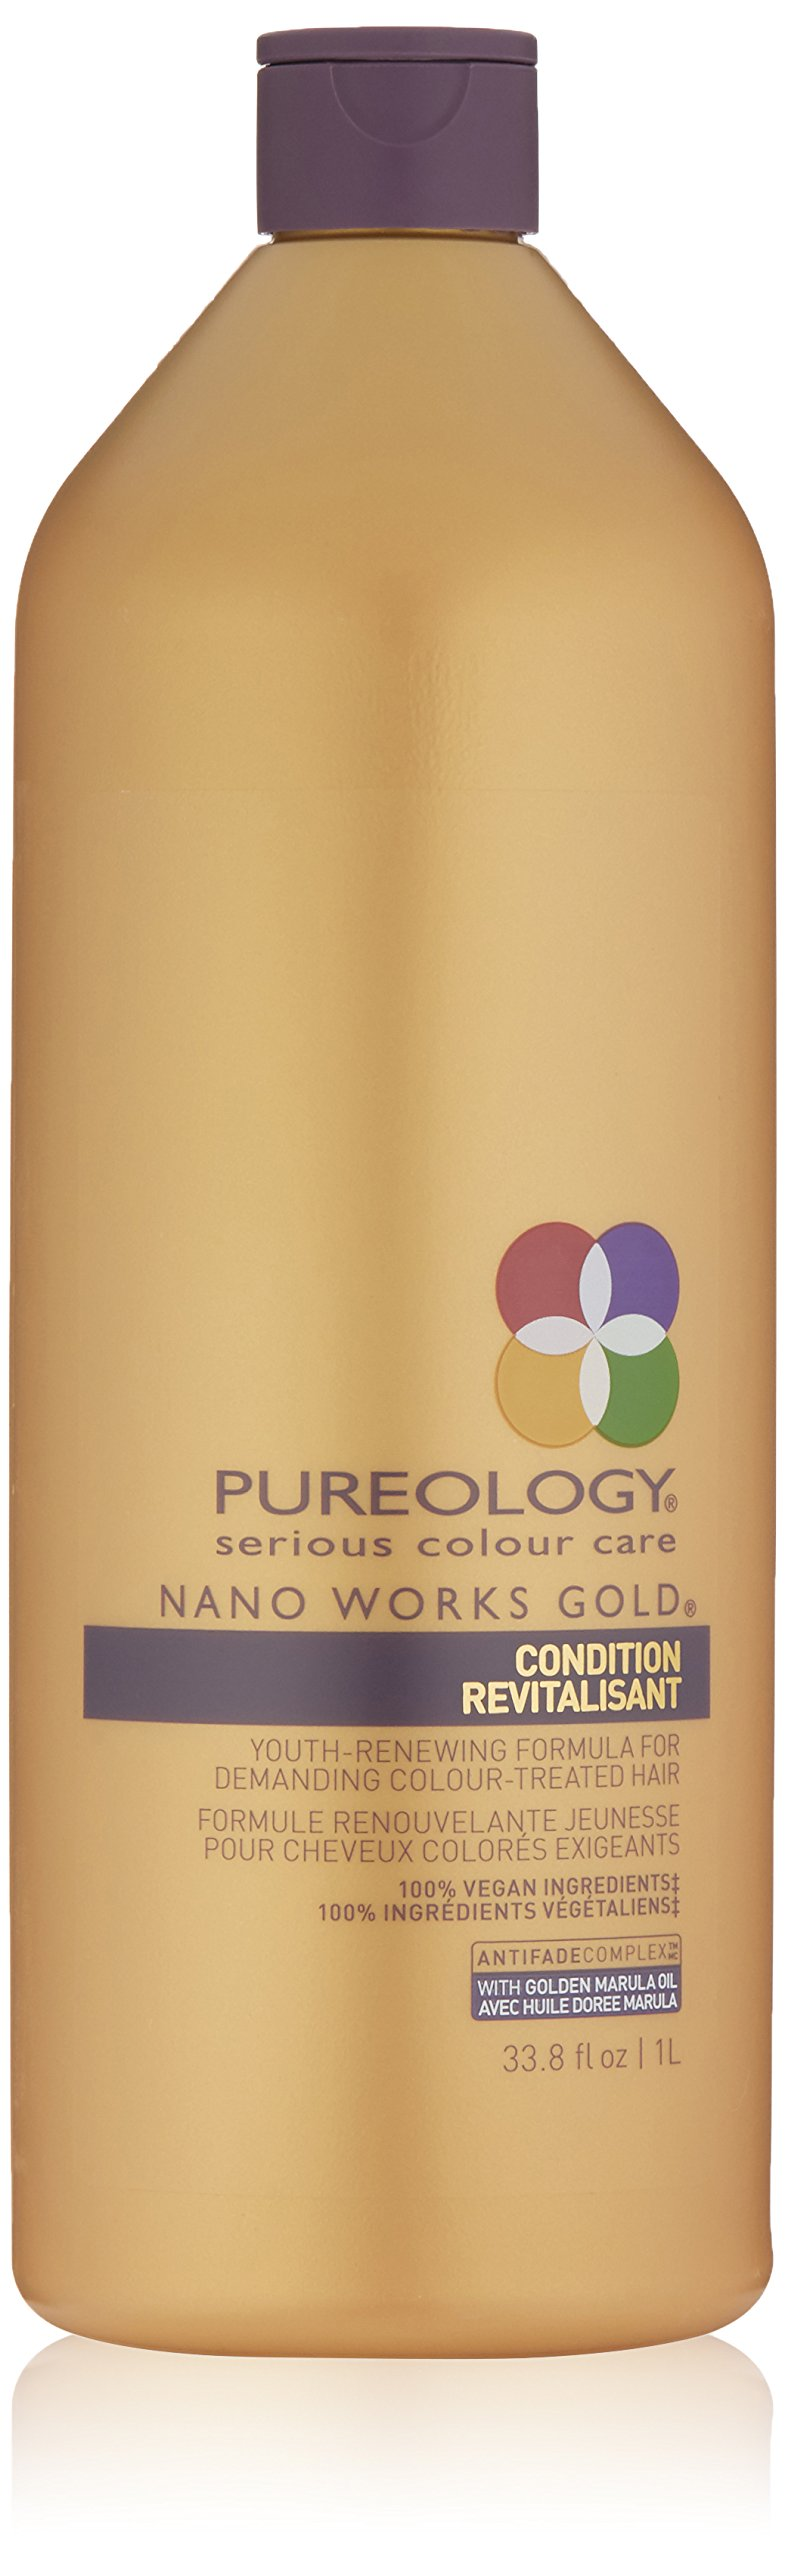 Pureology Nano Works Gold Conditioner ,33.8 Fl Oz by Pureology (Image #1)